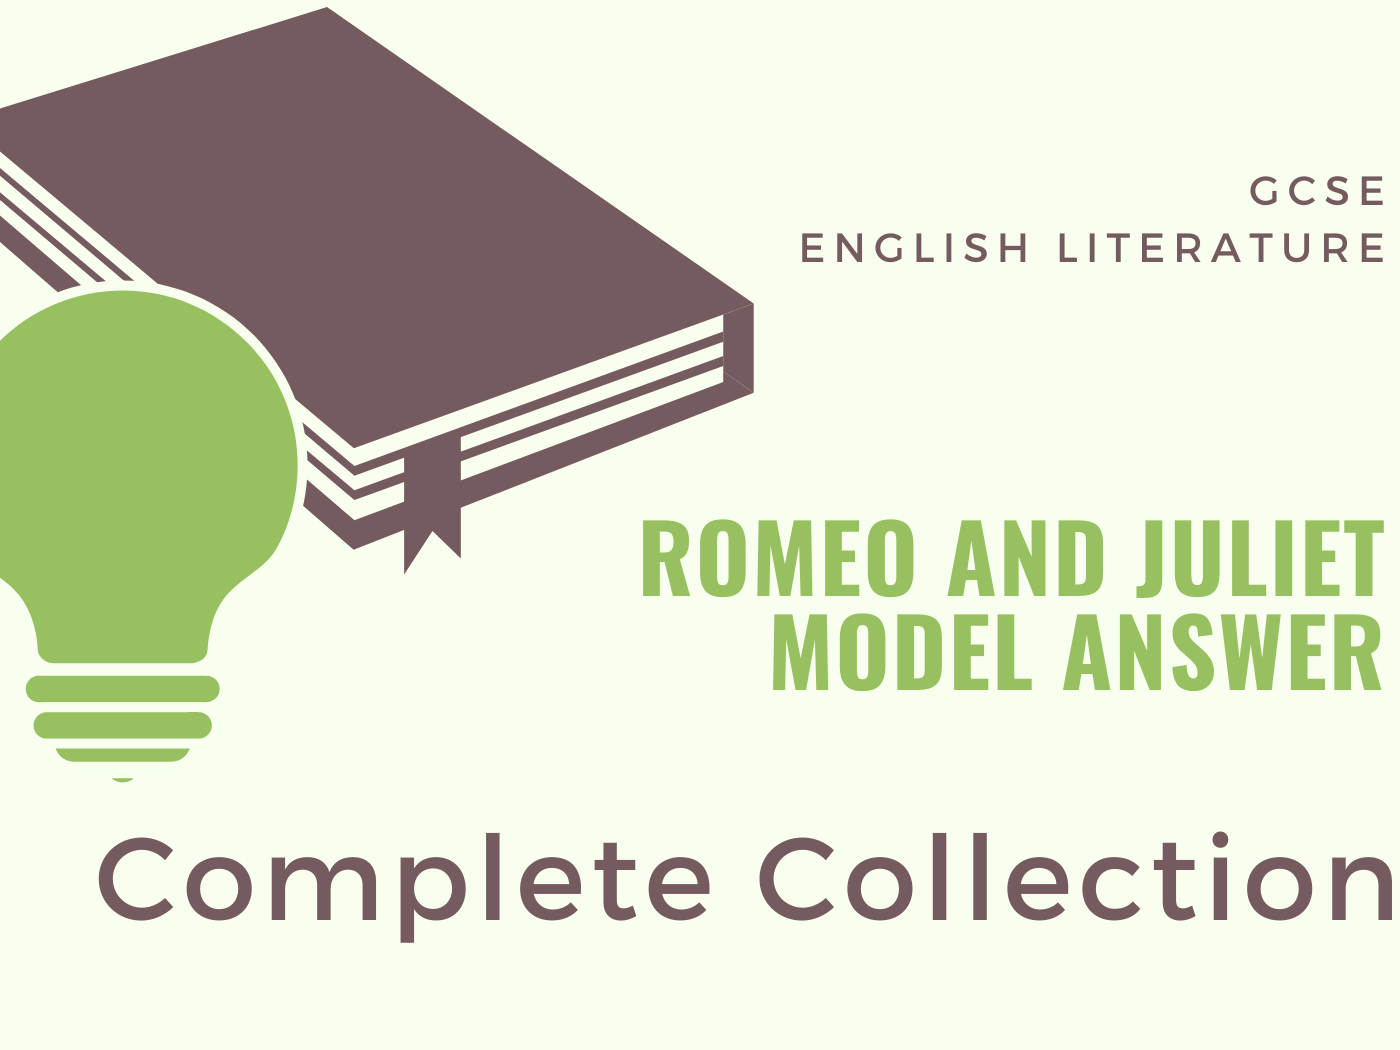 Romeo and Juliet - Model Answer: Complete Collection